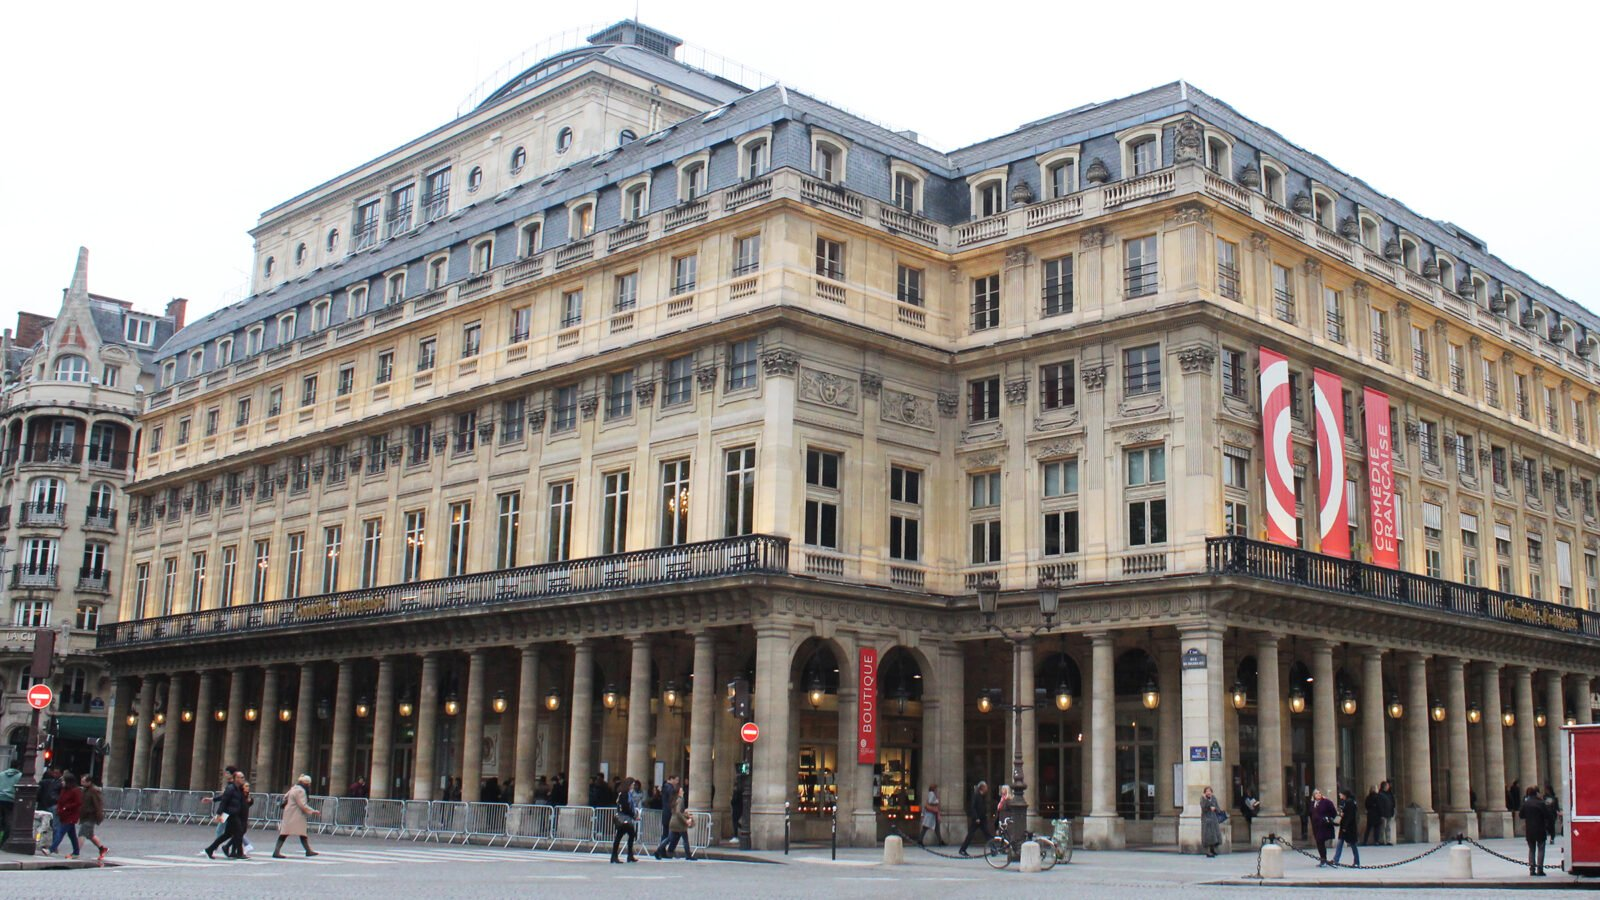 This is the Comedie Française, the most famous theatre in Paris